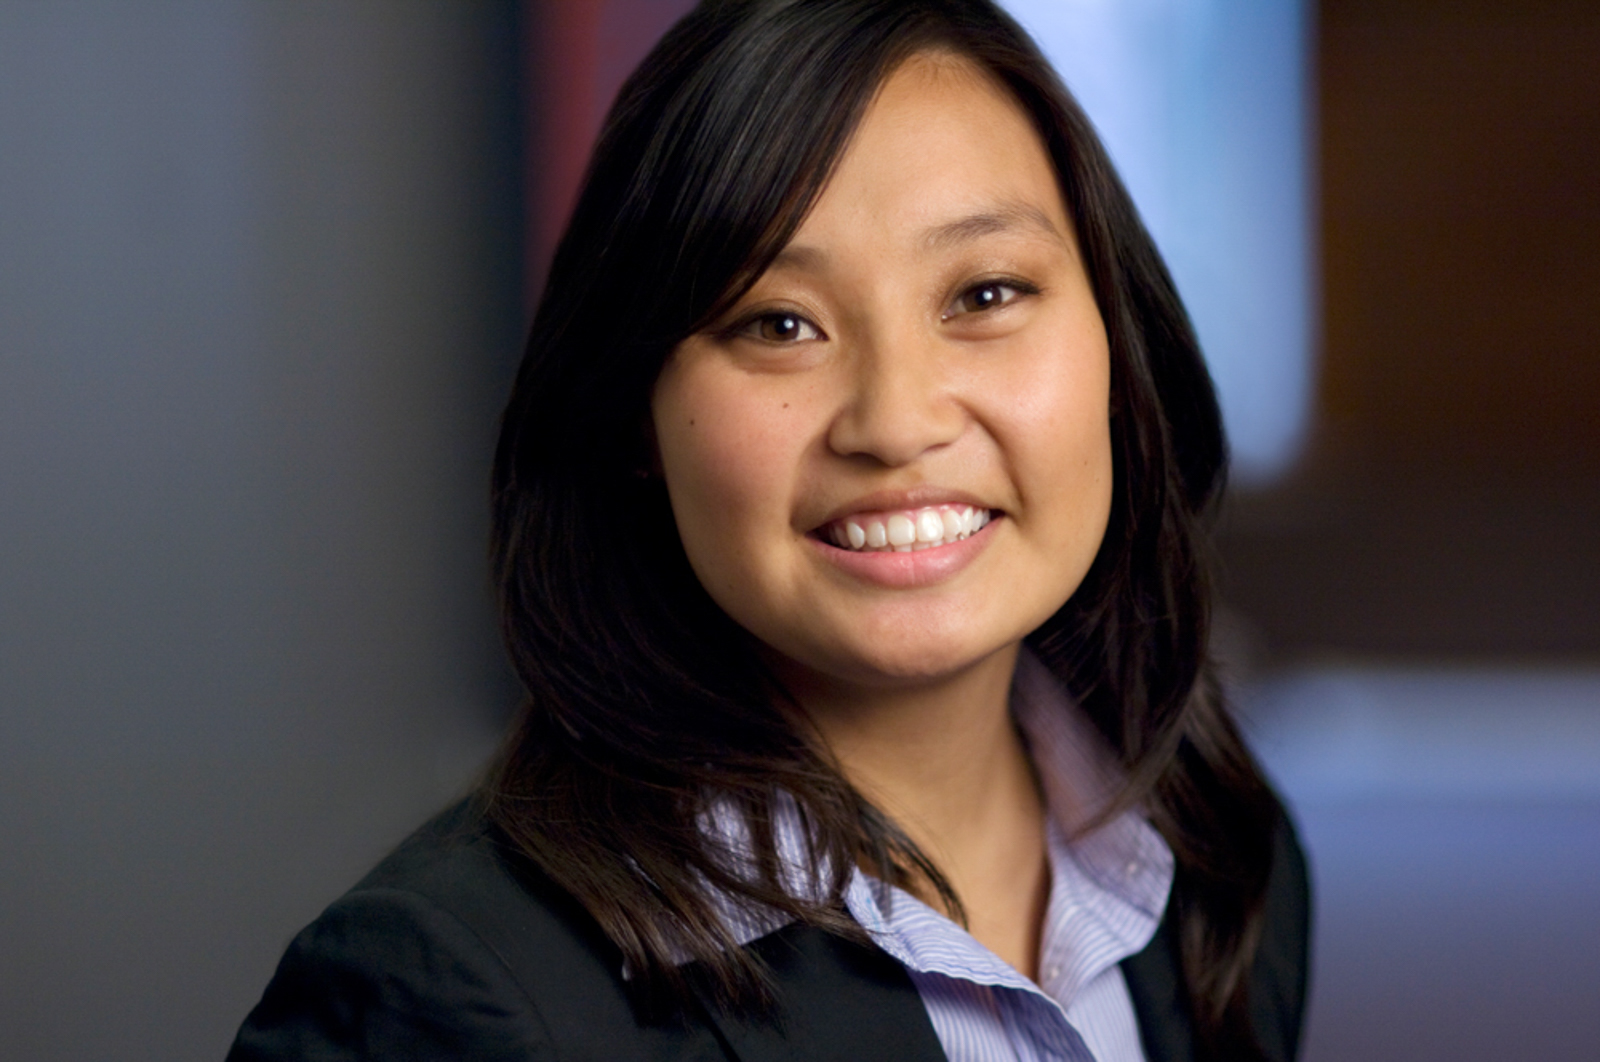 Portrait of young woman smiling in office setup